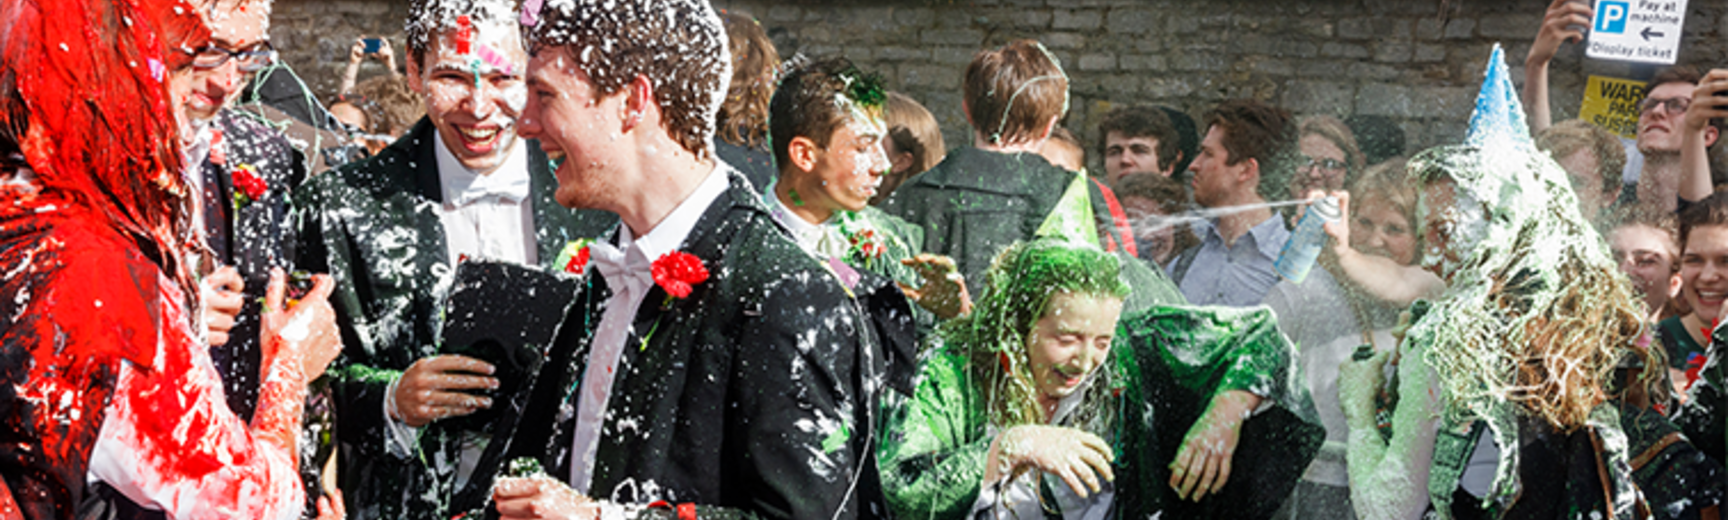 Oxford students celebrating finishing exams by spraying foam and champagne